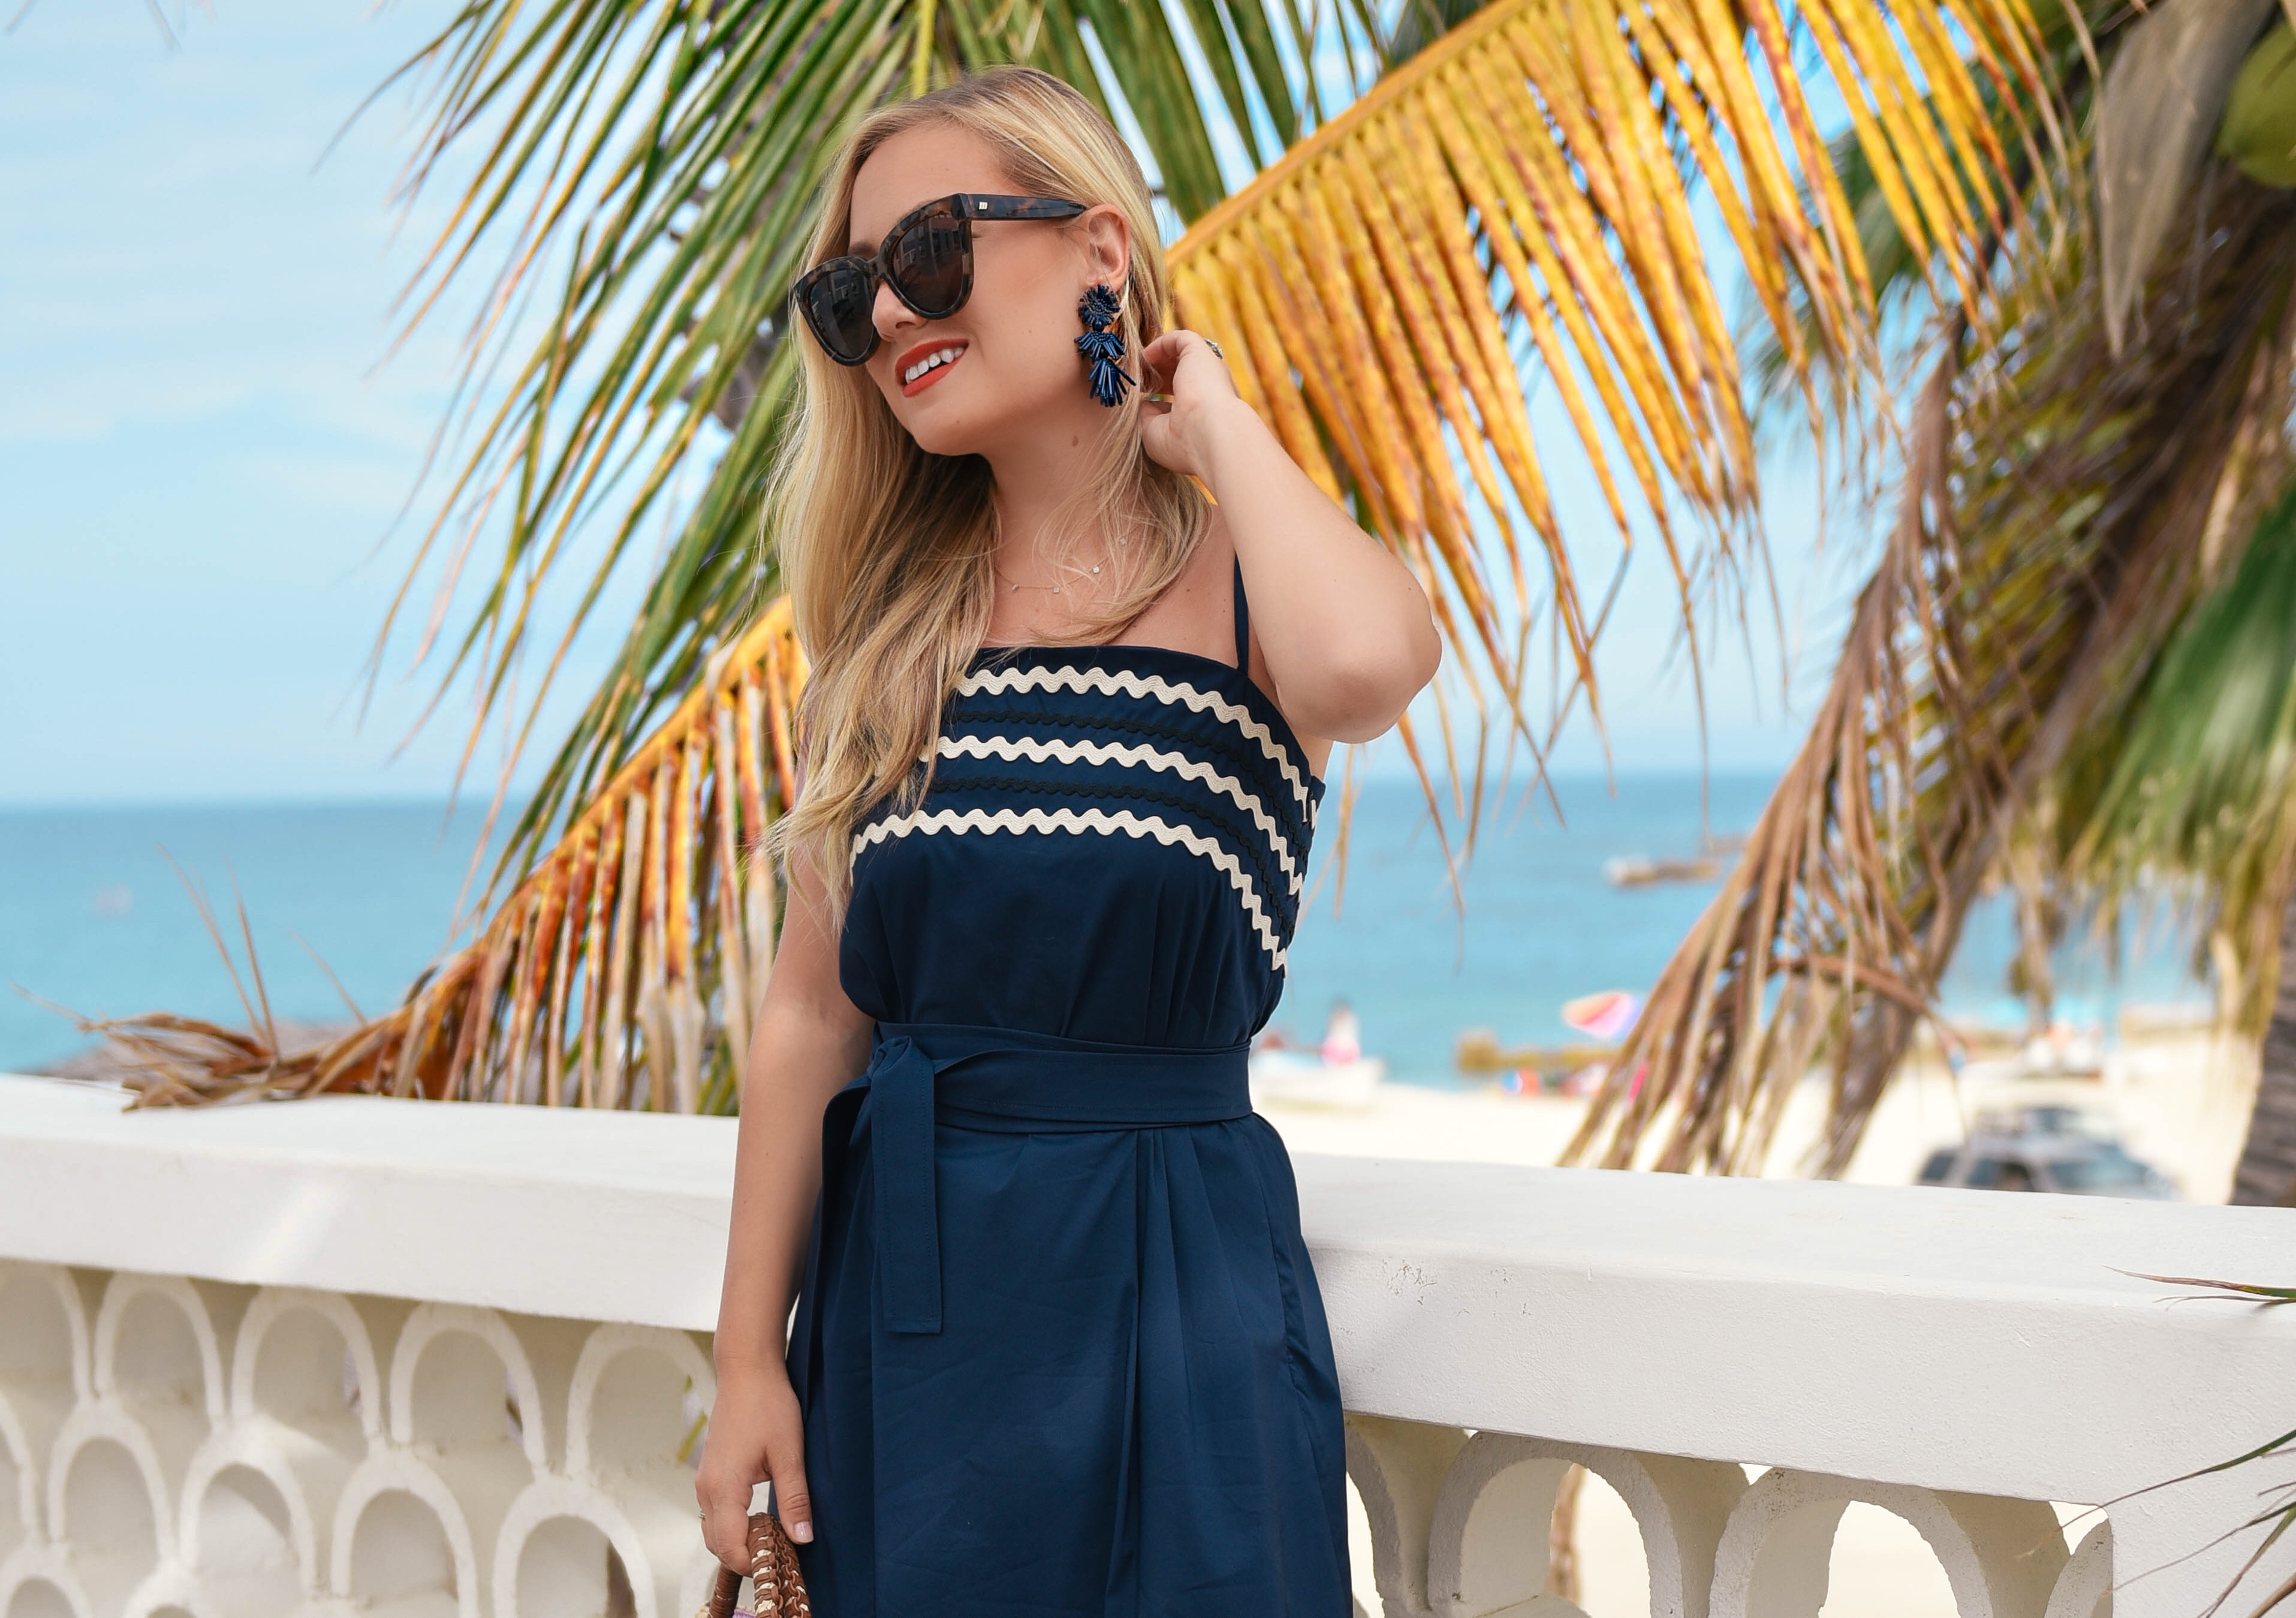 Lo-Murphy-Vineyard-Vines-Navy-Maxi-Dress-Vacation-Style-1